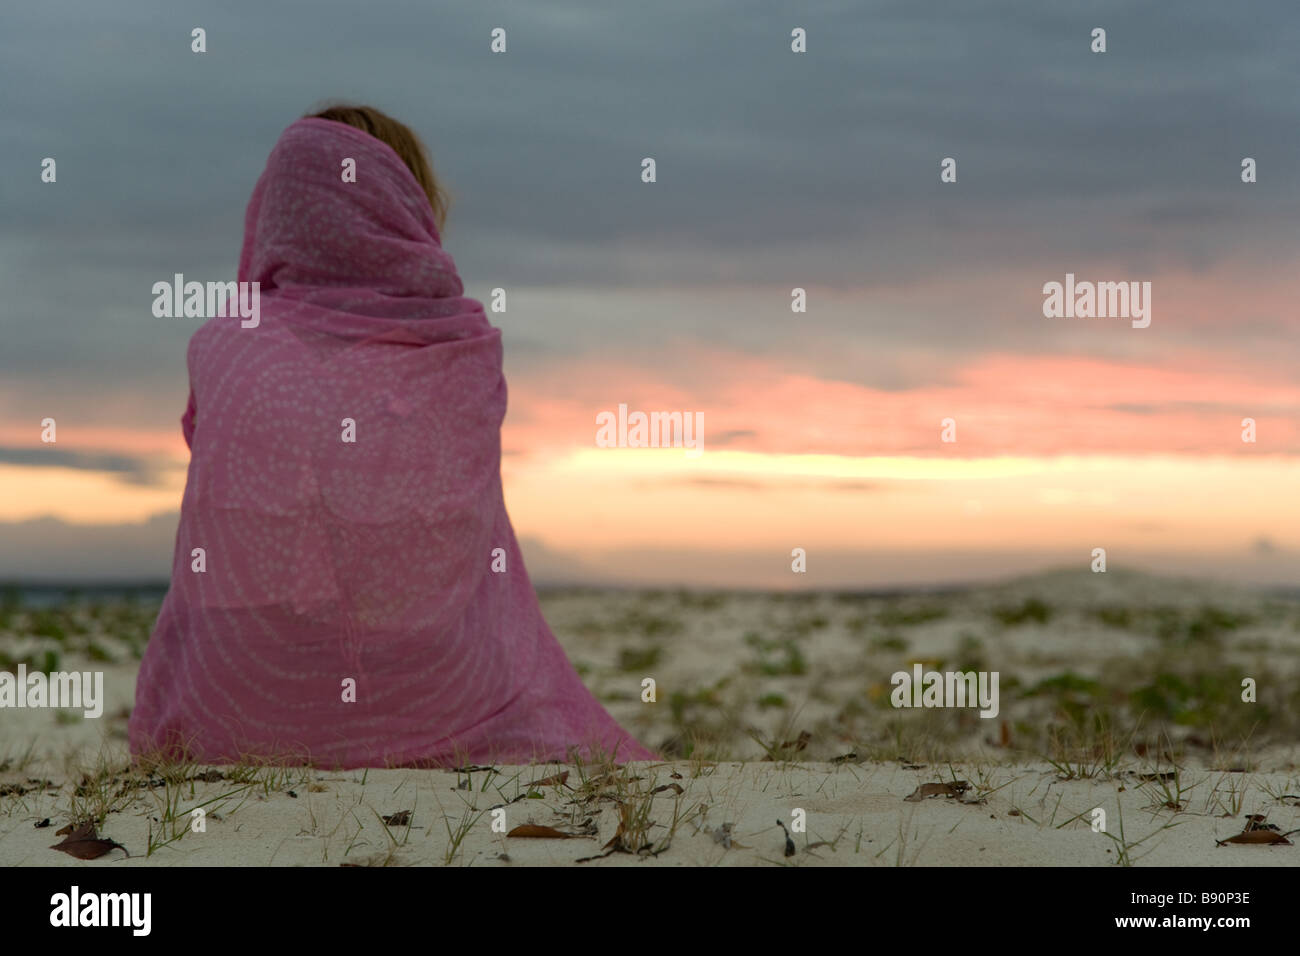 Nomad on desert - Stock Image